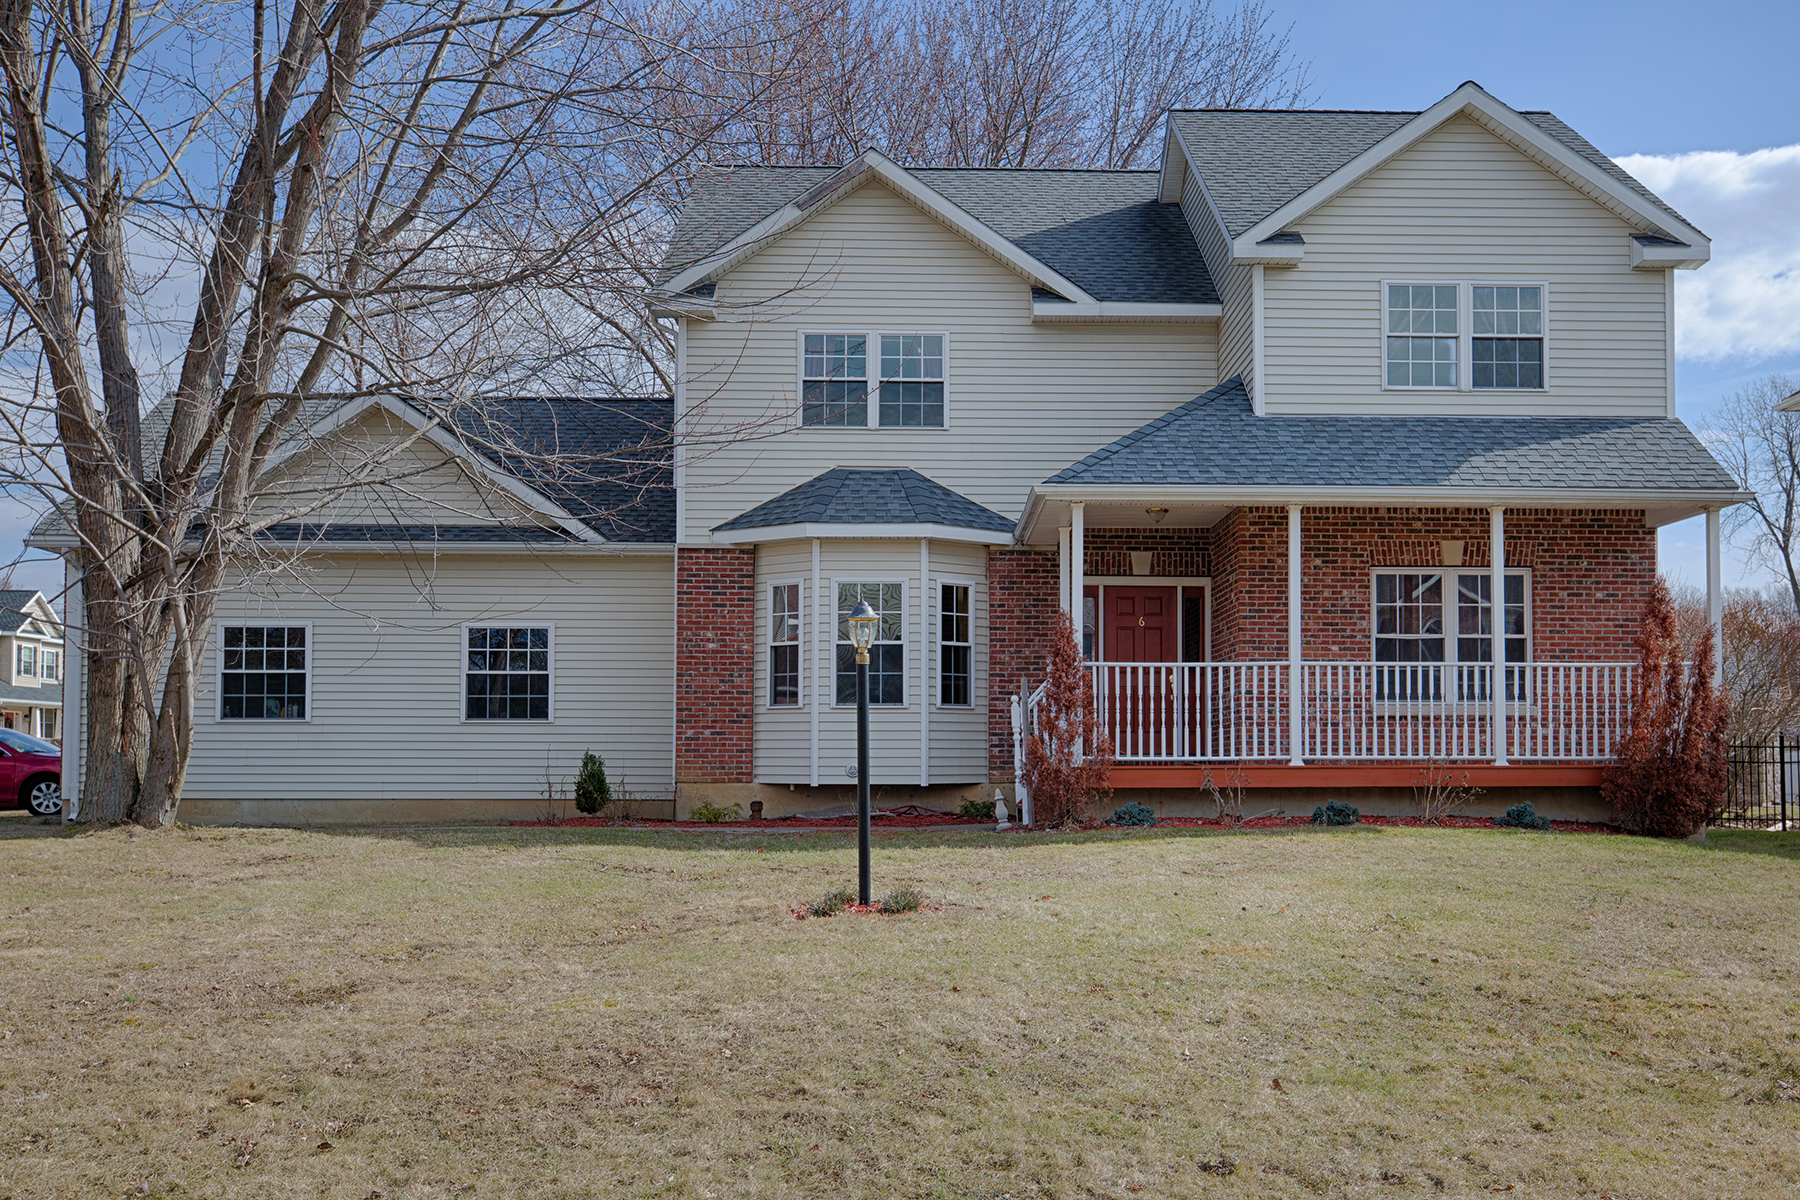 Single Family Home for Sale at Gleaming Colonial on Cul de Sac 6 Eastland Circle Bethlehem, New York 12203 United States